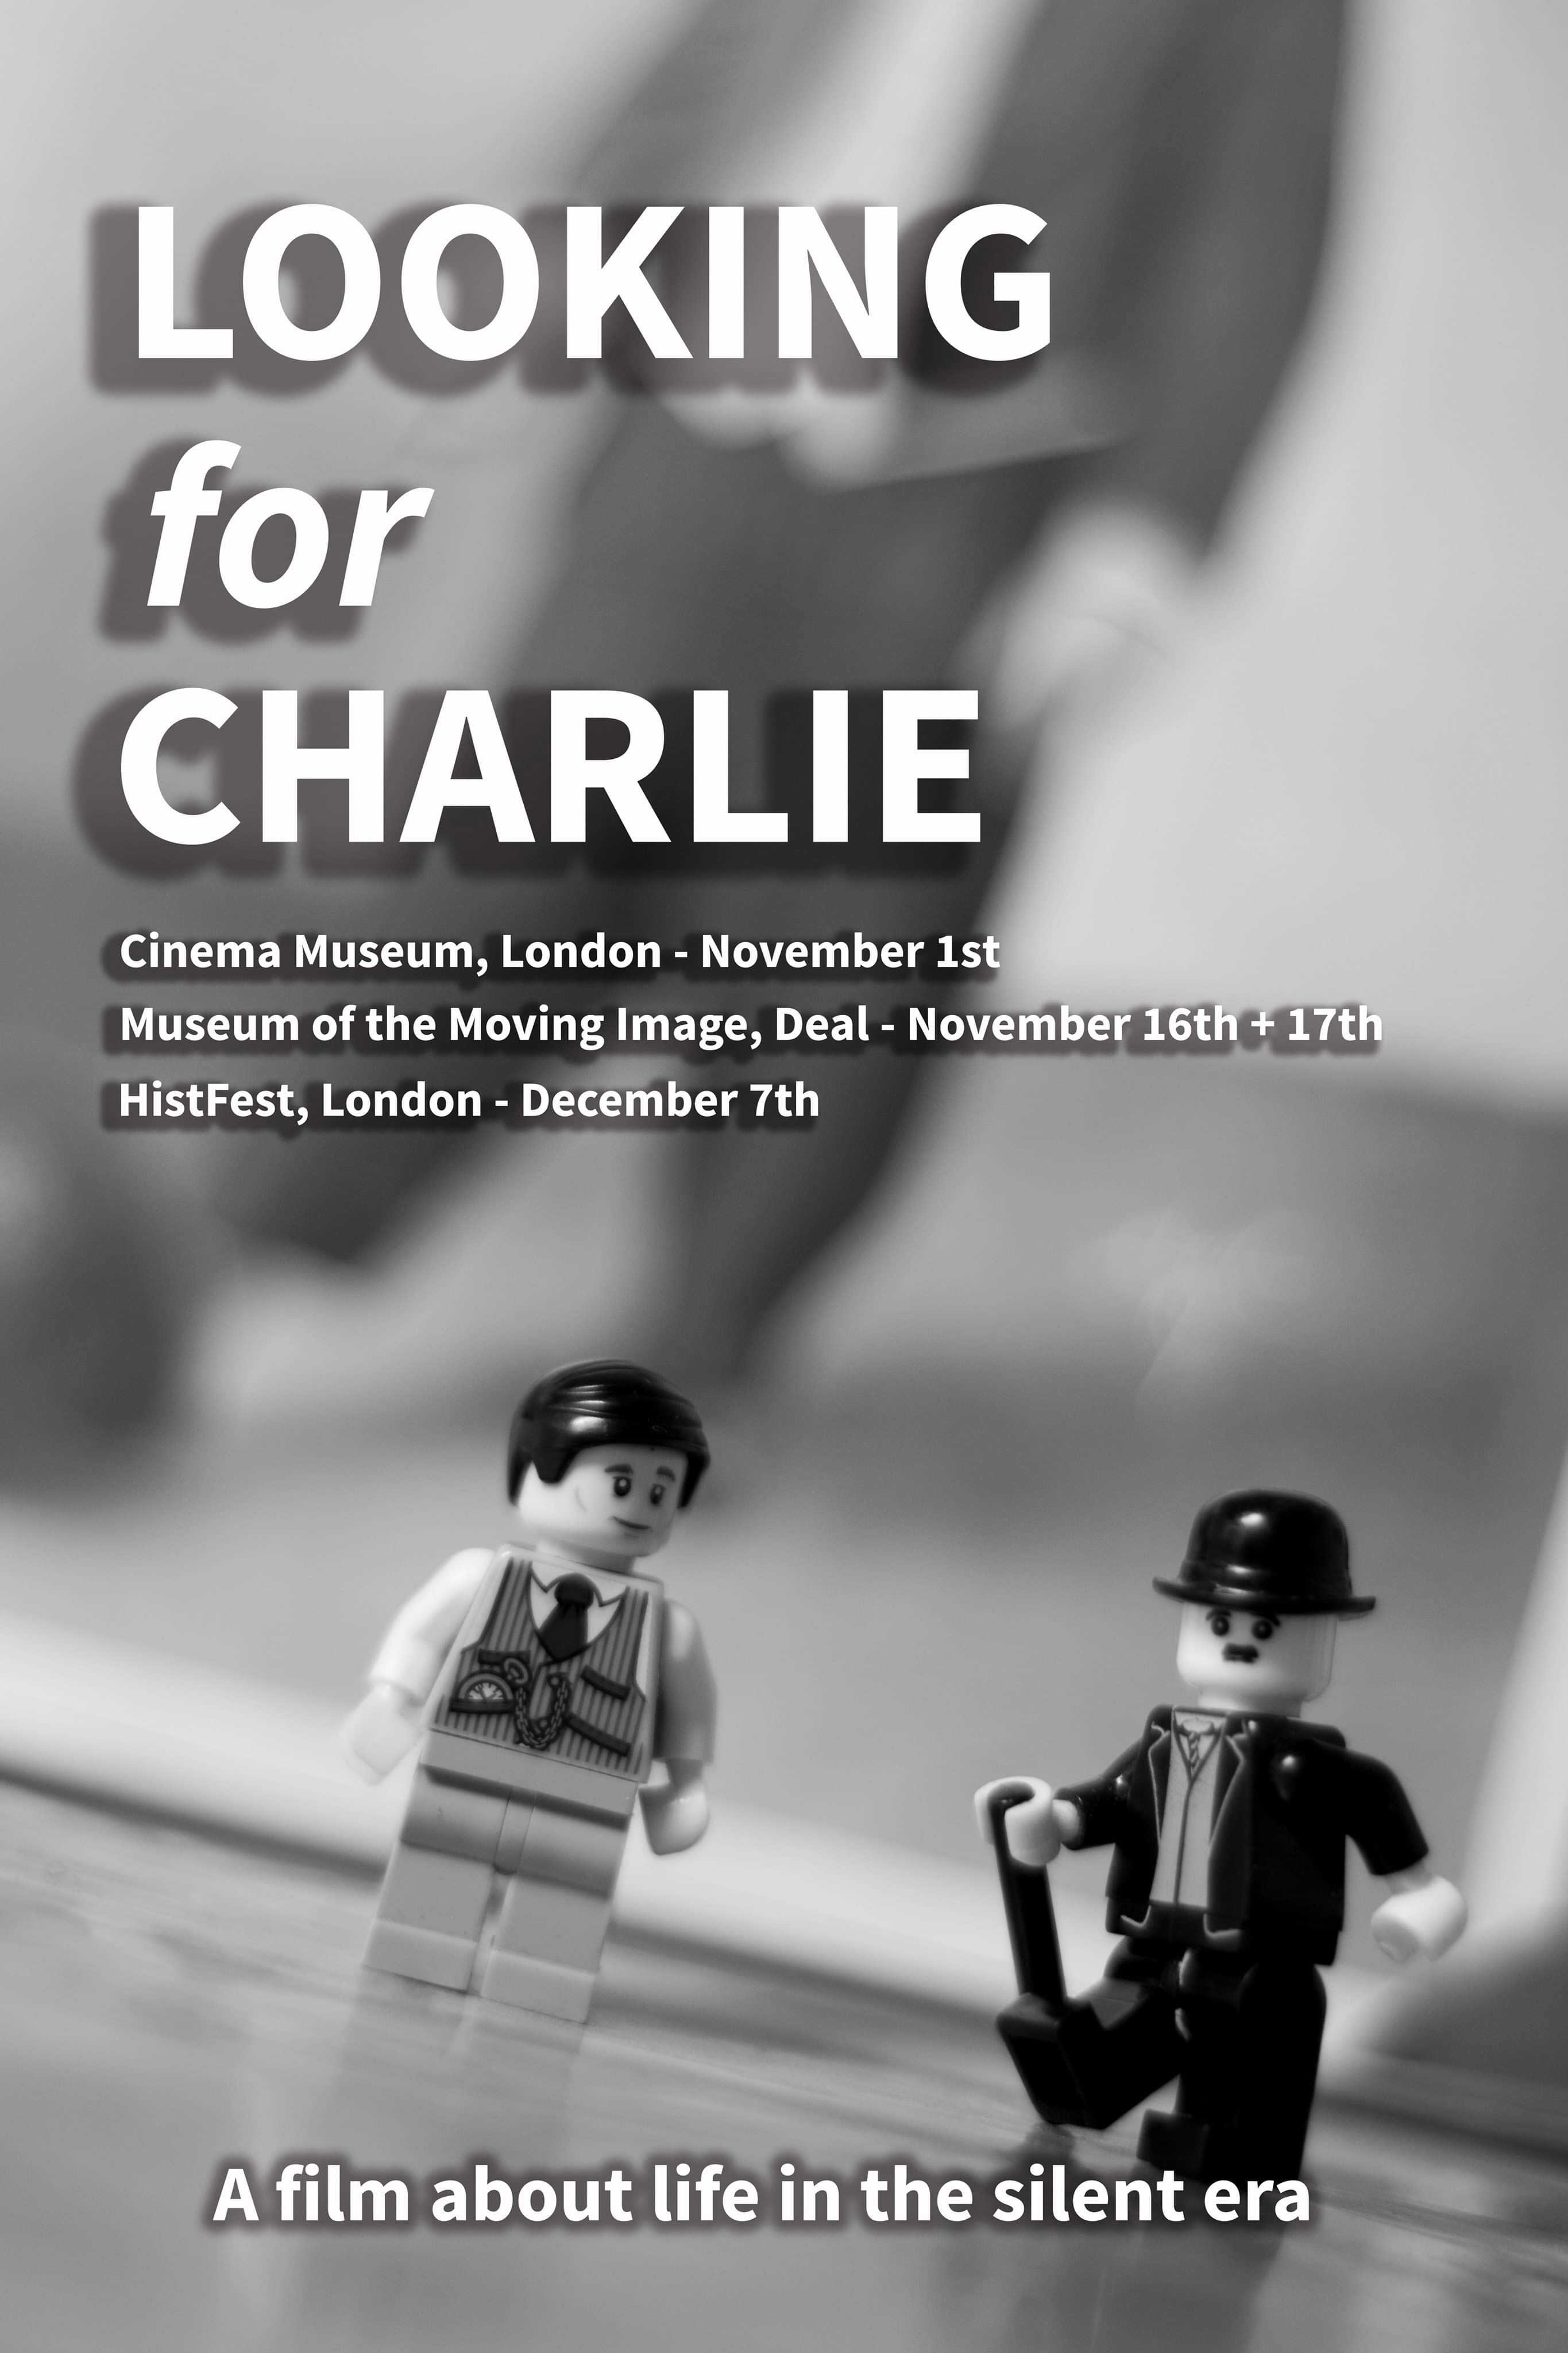 The poster for Looking for Charlie